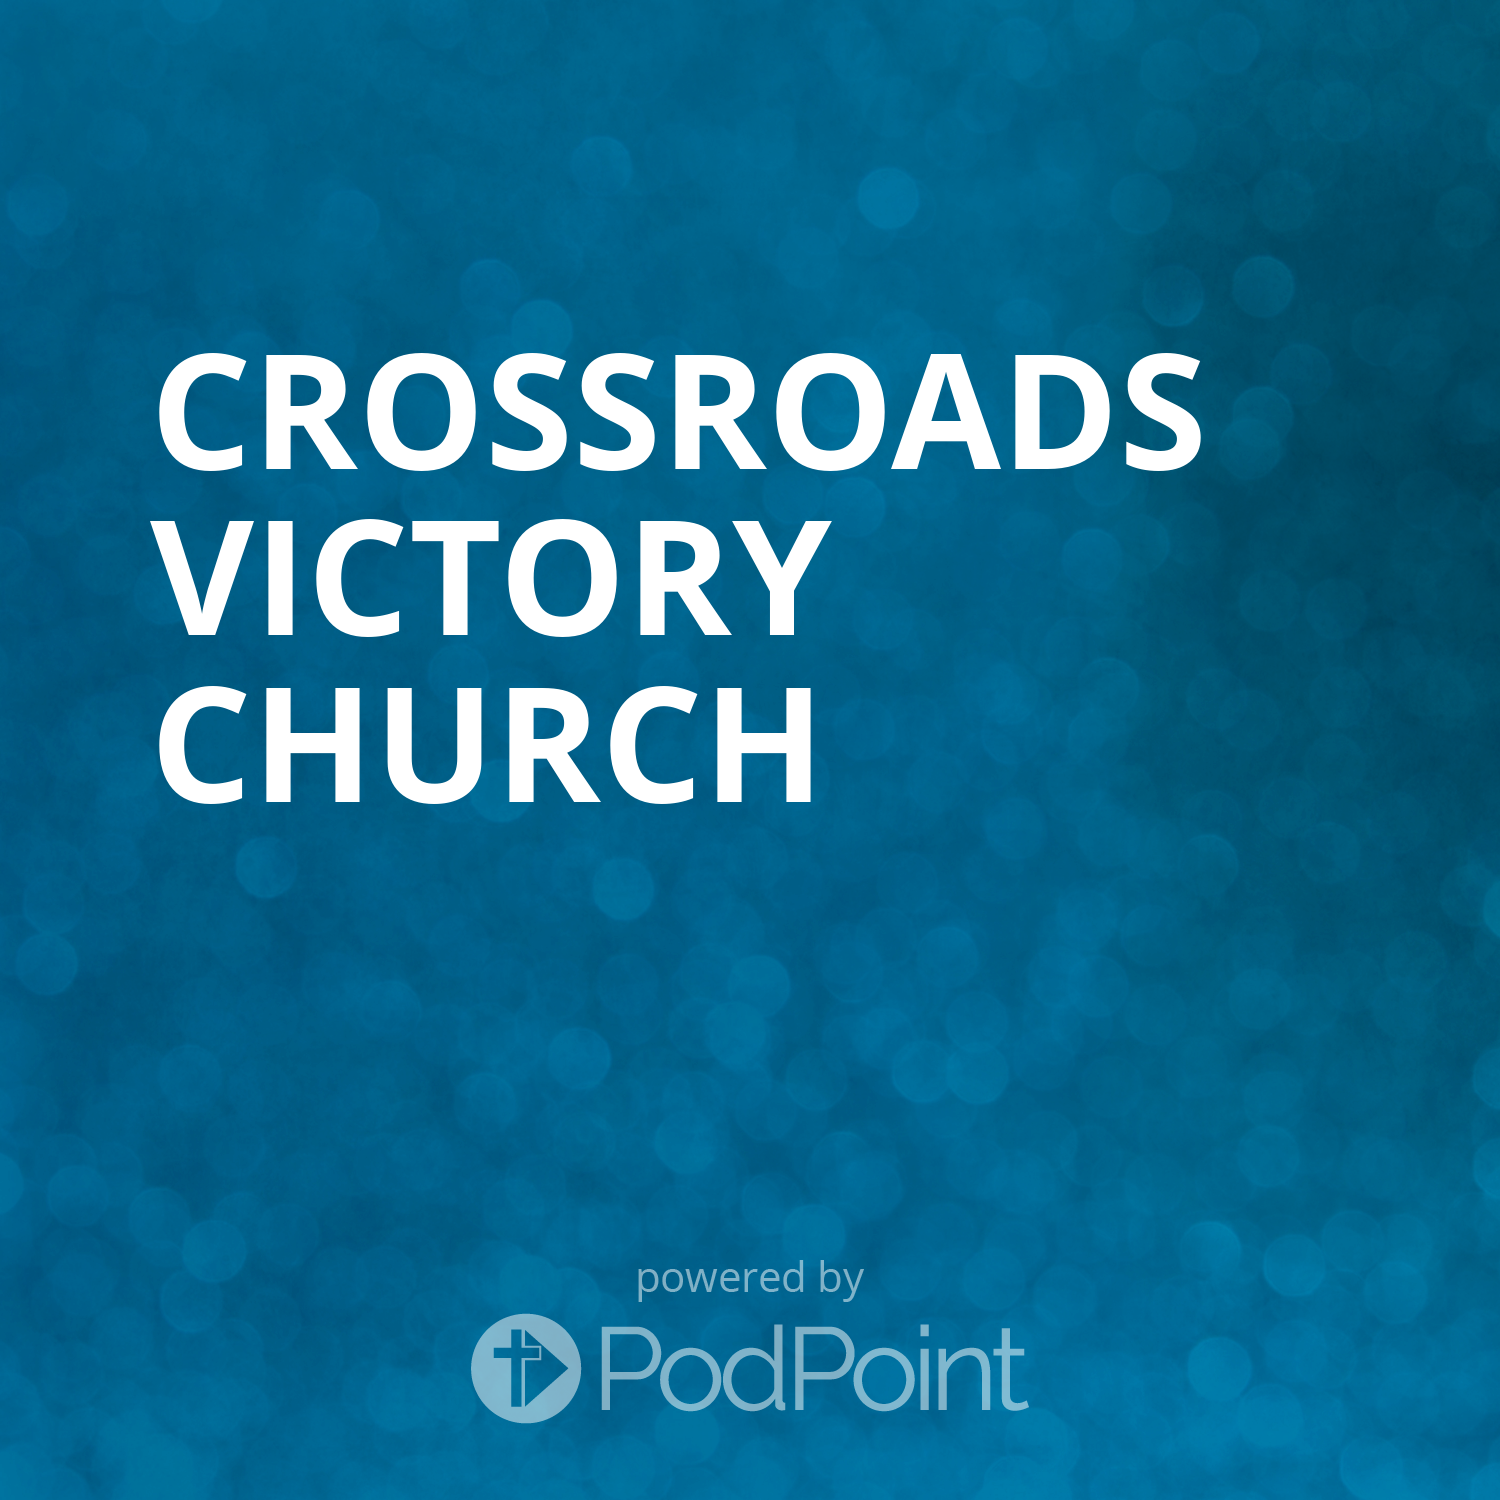 Crossroads Victory Church